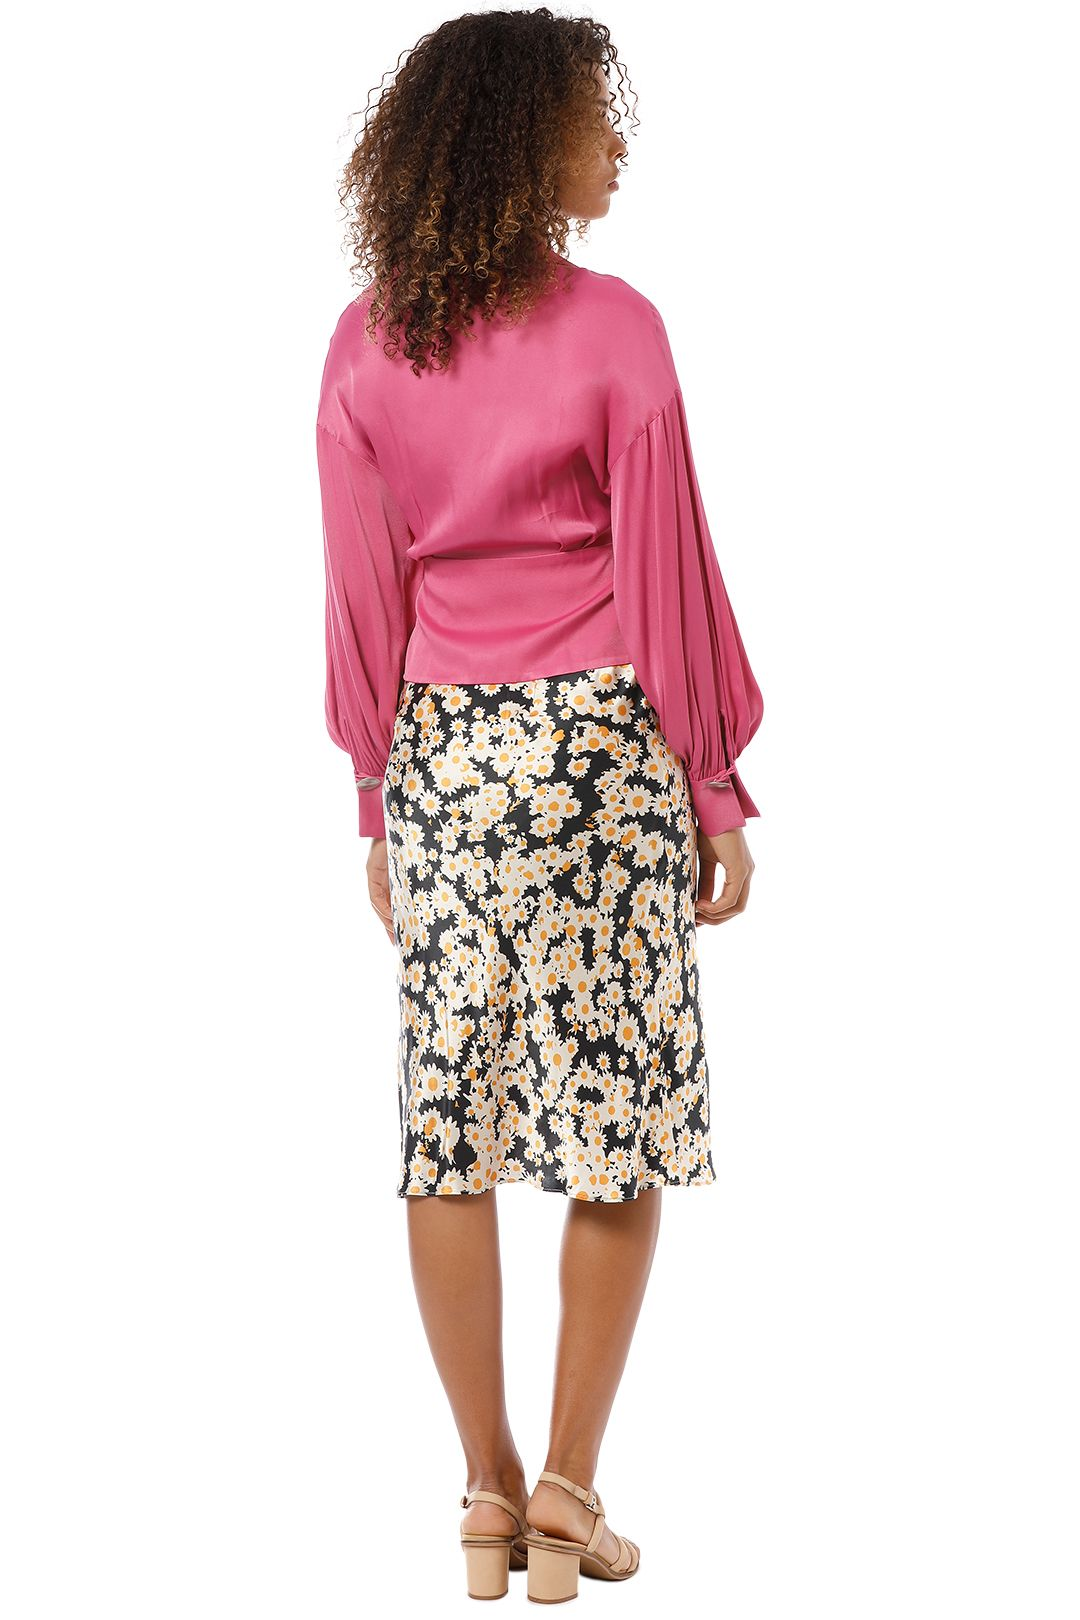 Manning Cartell - Status Update Blouse - Pink - back